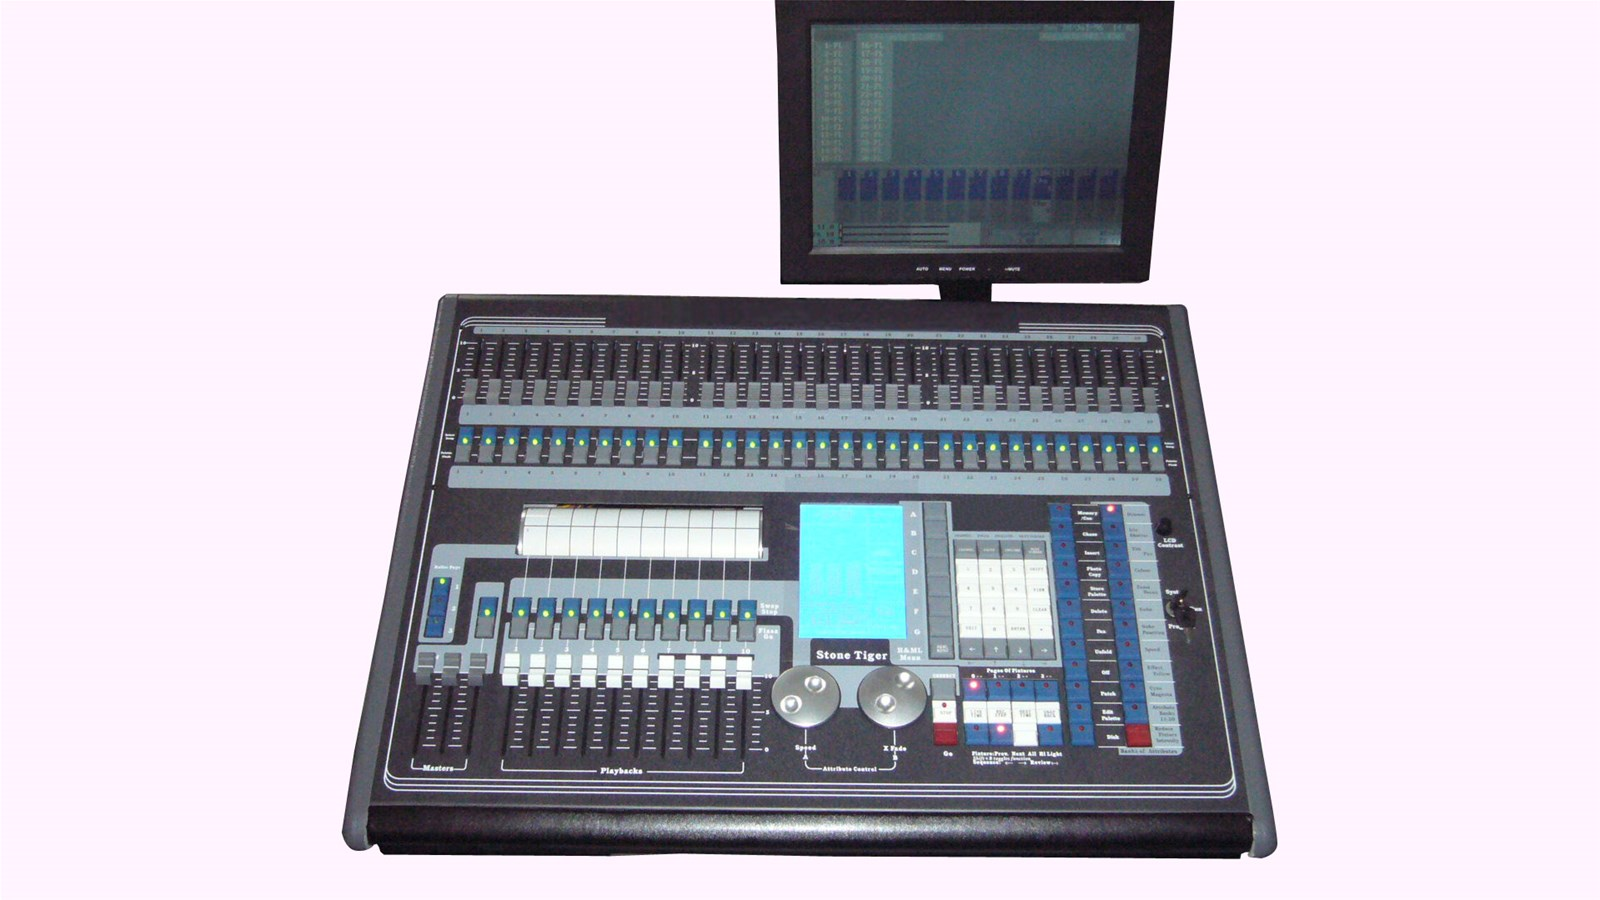 Stone Tiger Computer Controller with LCD Display DMX 512 Console For DJ Stage Equipments